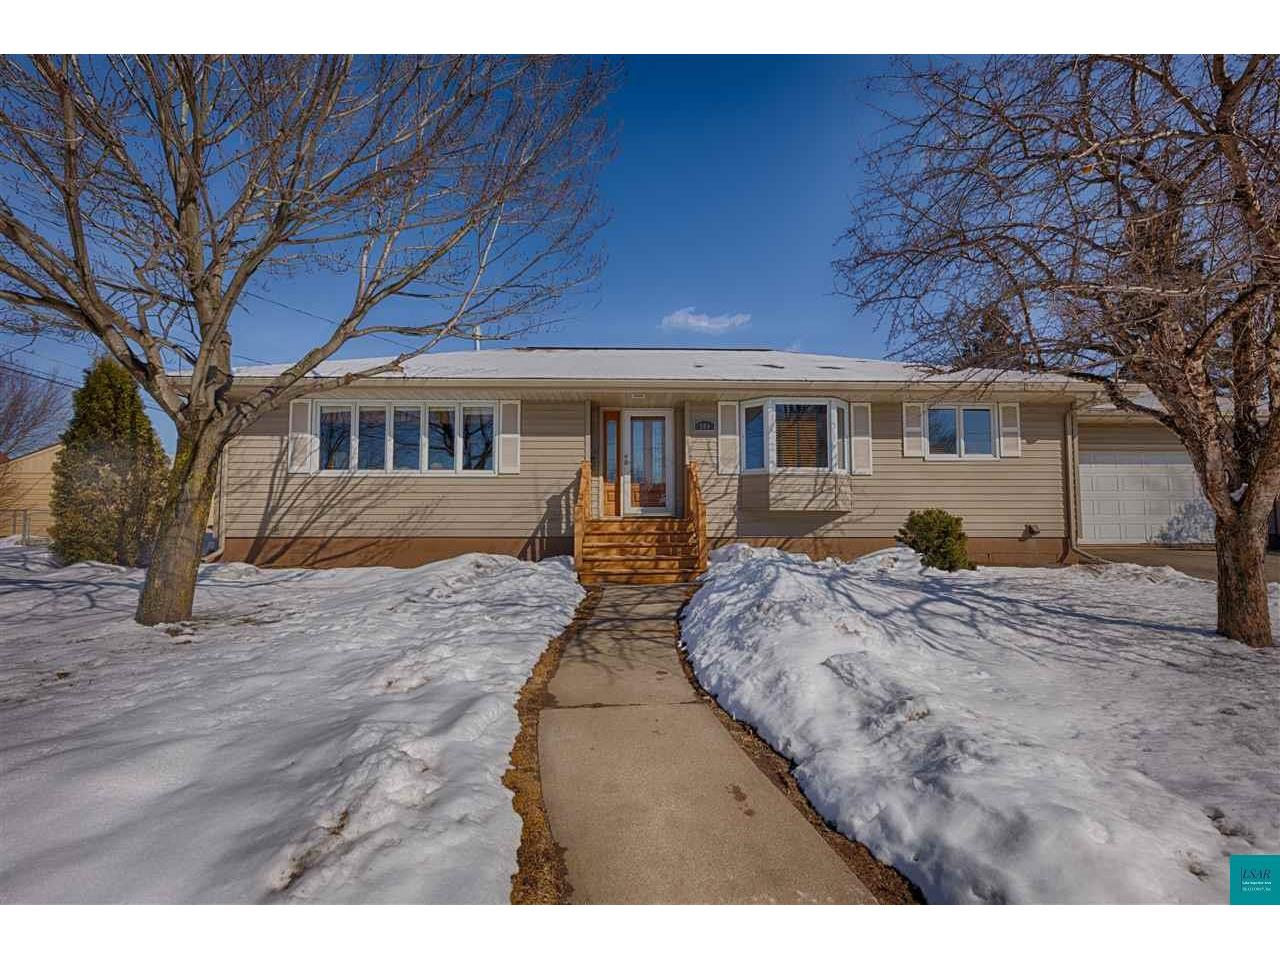 904 S 9th Ave Virginia Mn 55792 6073829 Image1